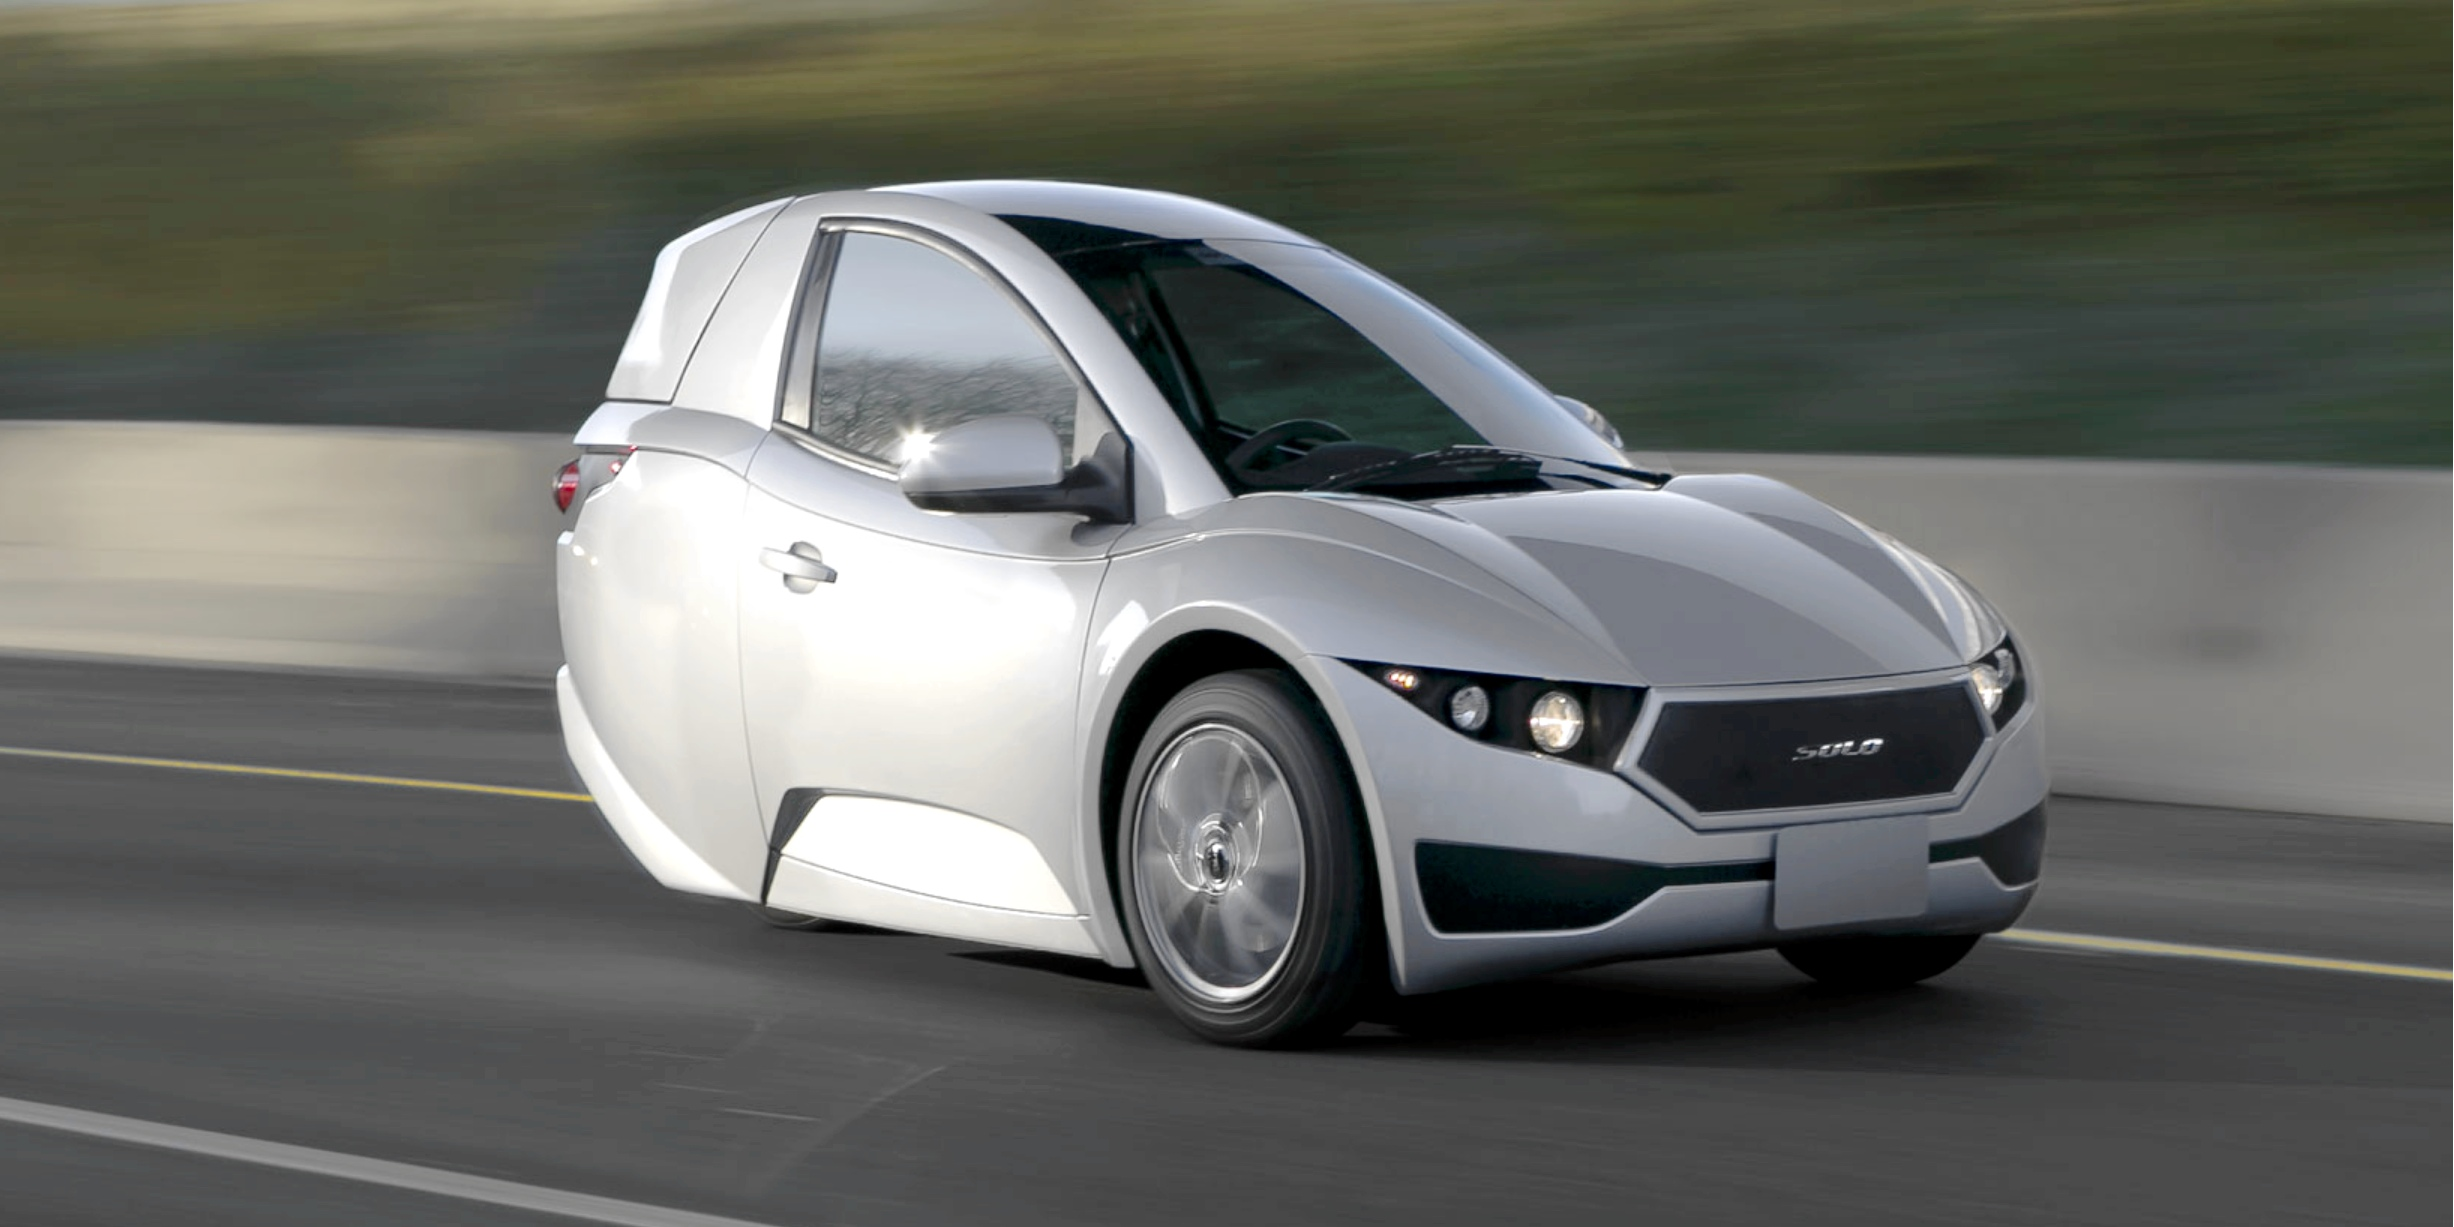 Electra Meccanica's SOLO qualifies for $900 rebate as zero-emission motorcycle in California